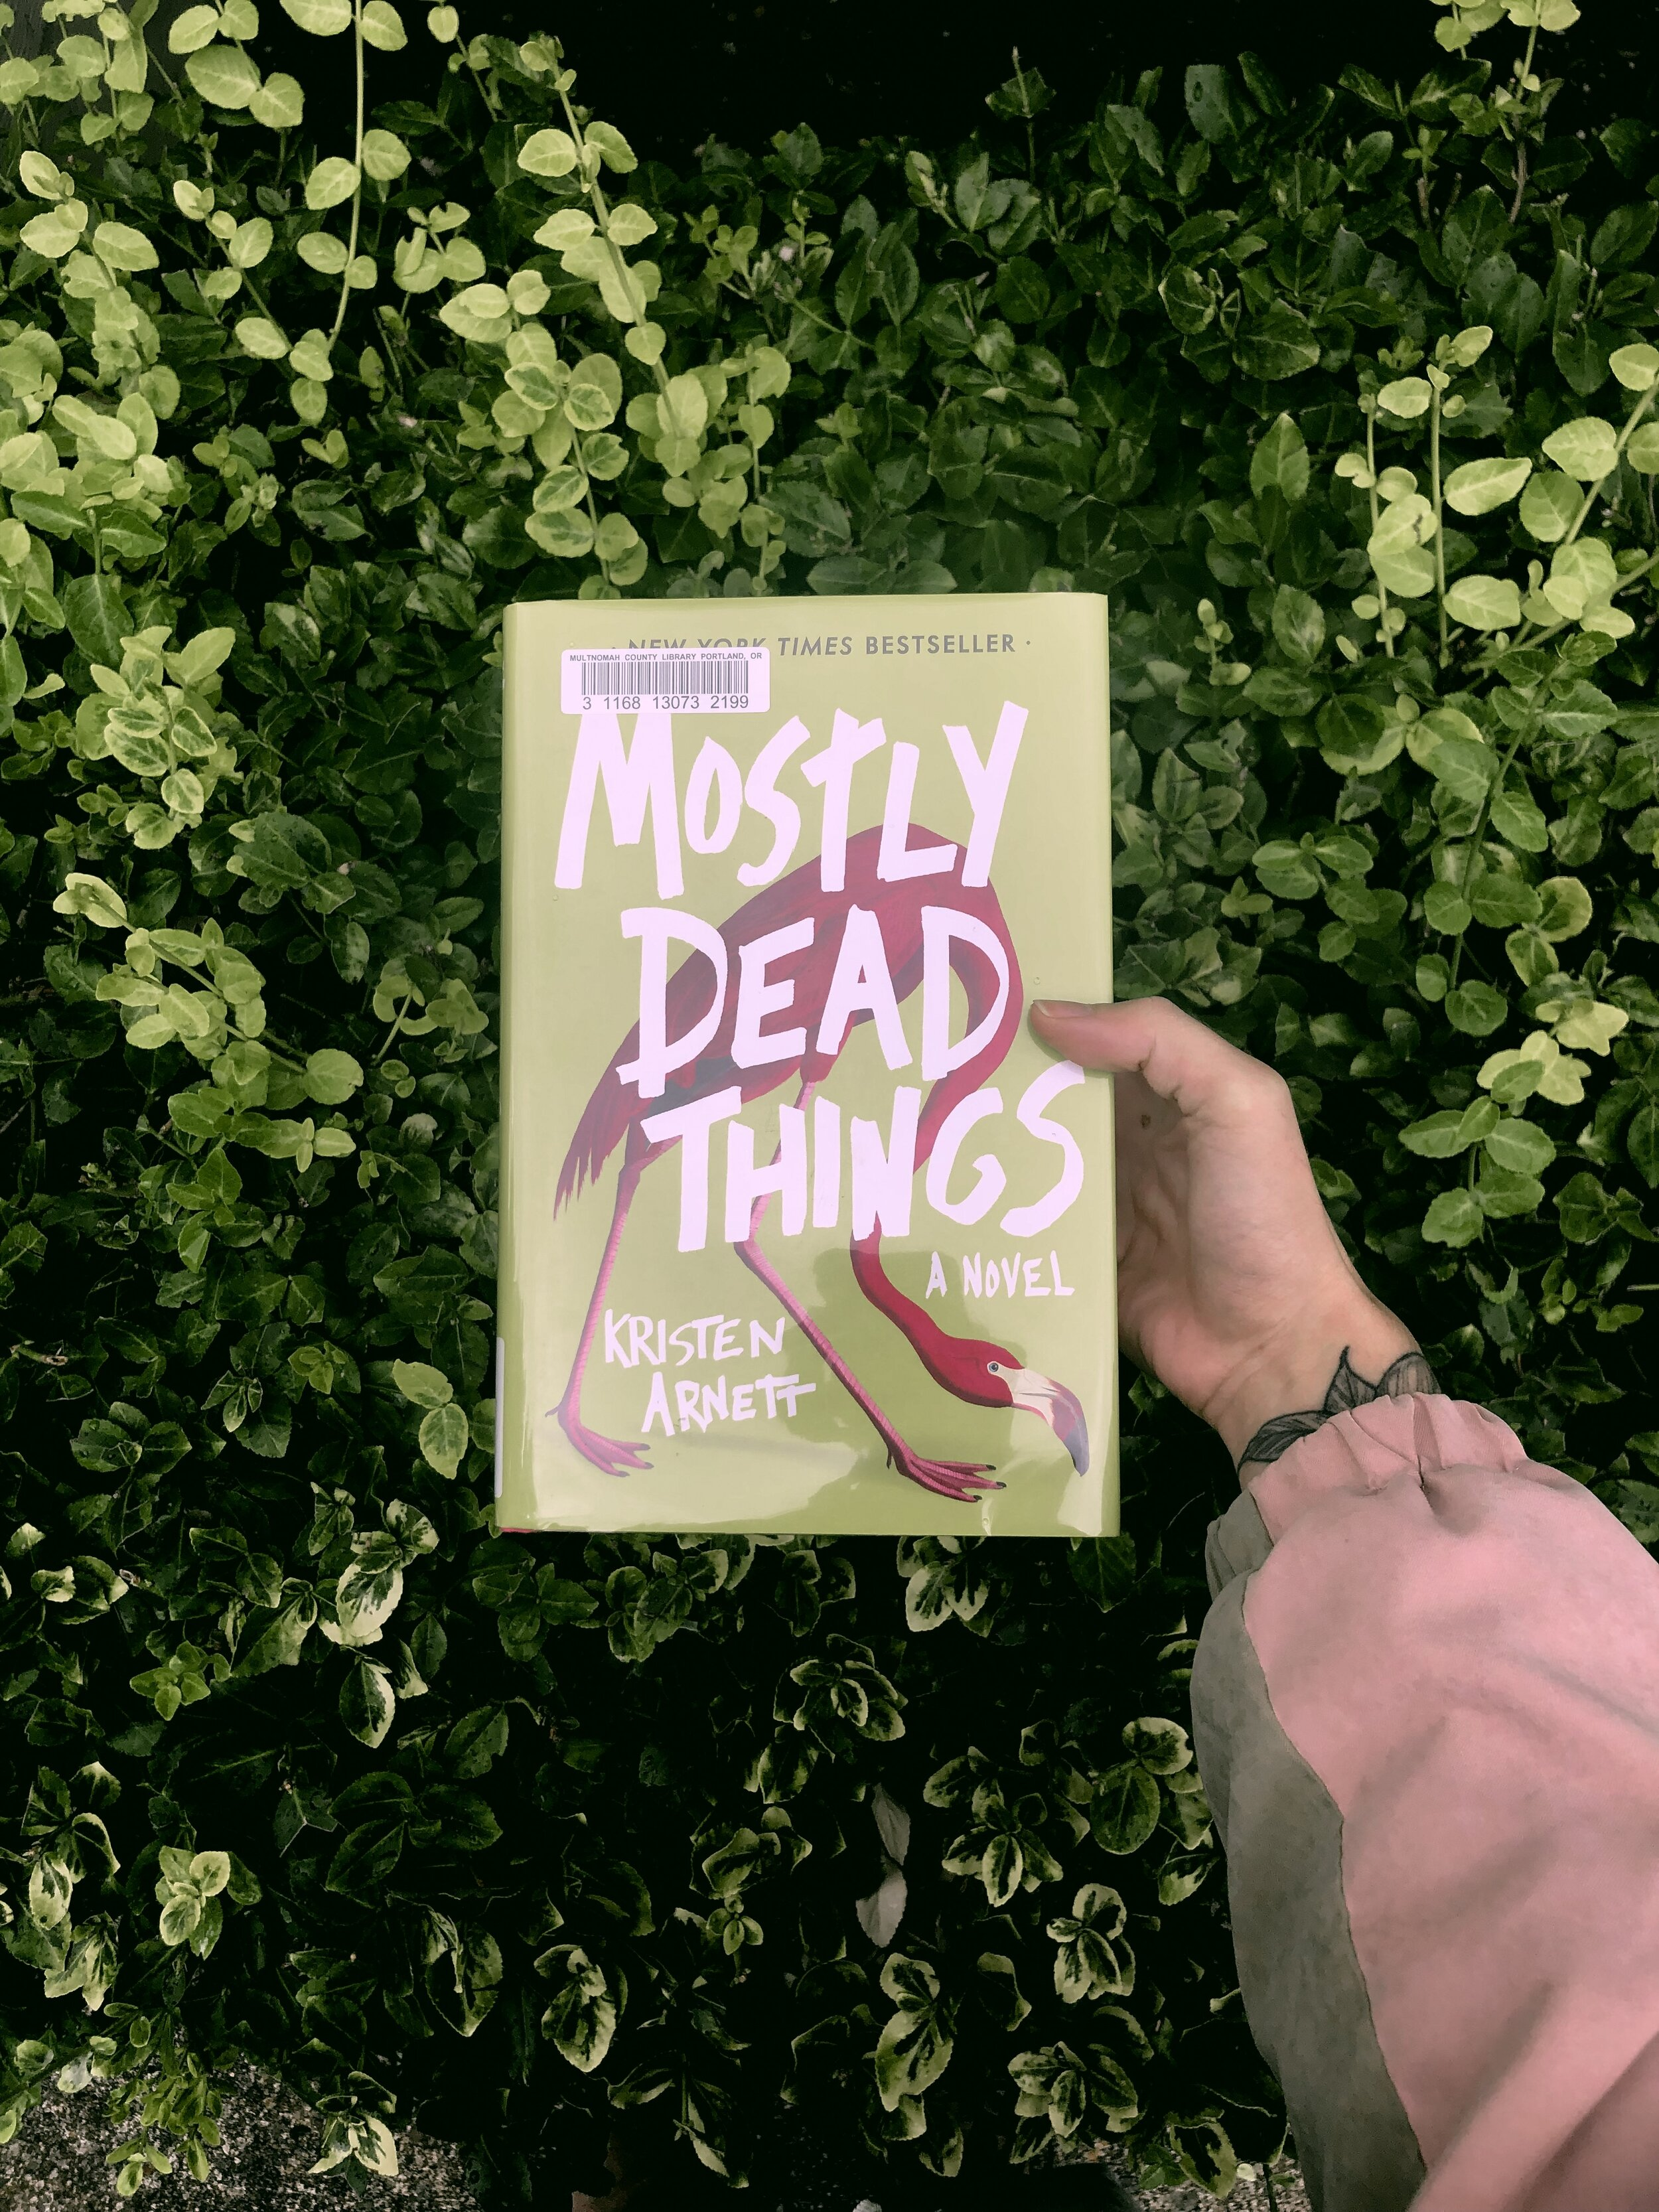 MOSTLY DEAD THINGS - by Kristen ArnettThis book was macabre and wacky, and on normal circumstances I would never have even picked it up. But Arnett made the characters so interesting and real that despite the very strange scenario, I really couldn't wait to see what happened on the next page.